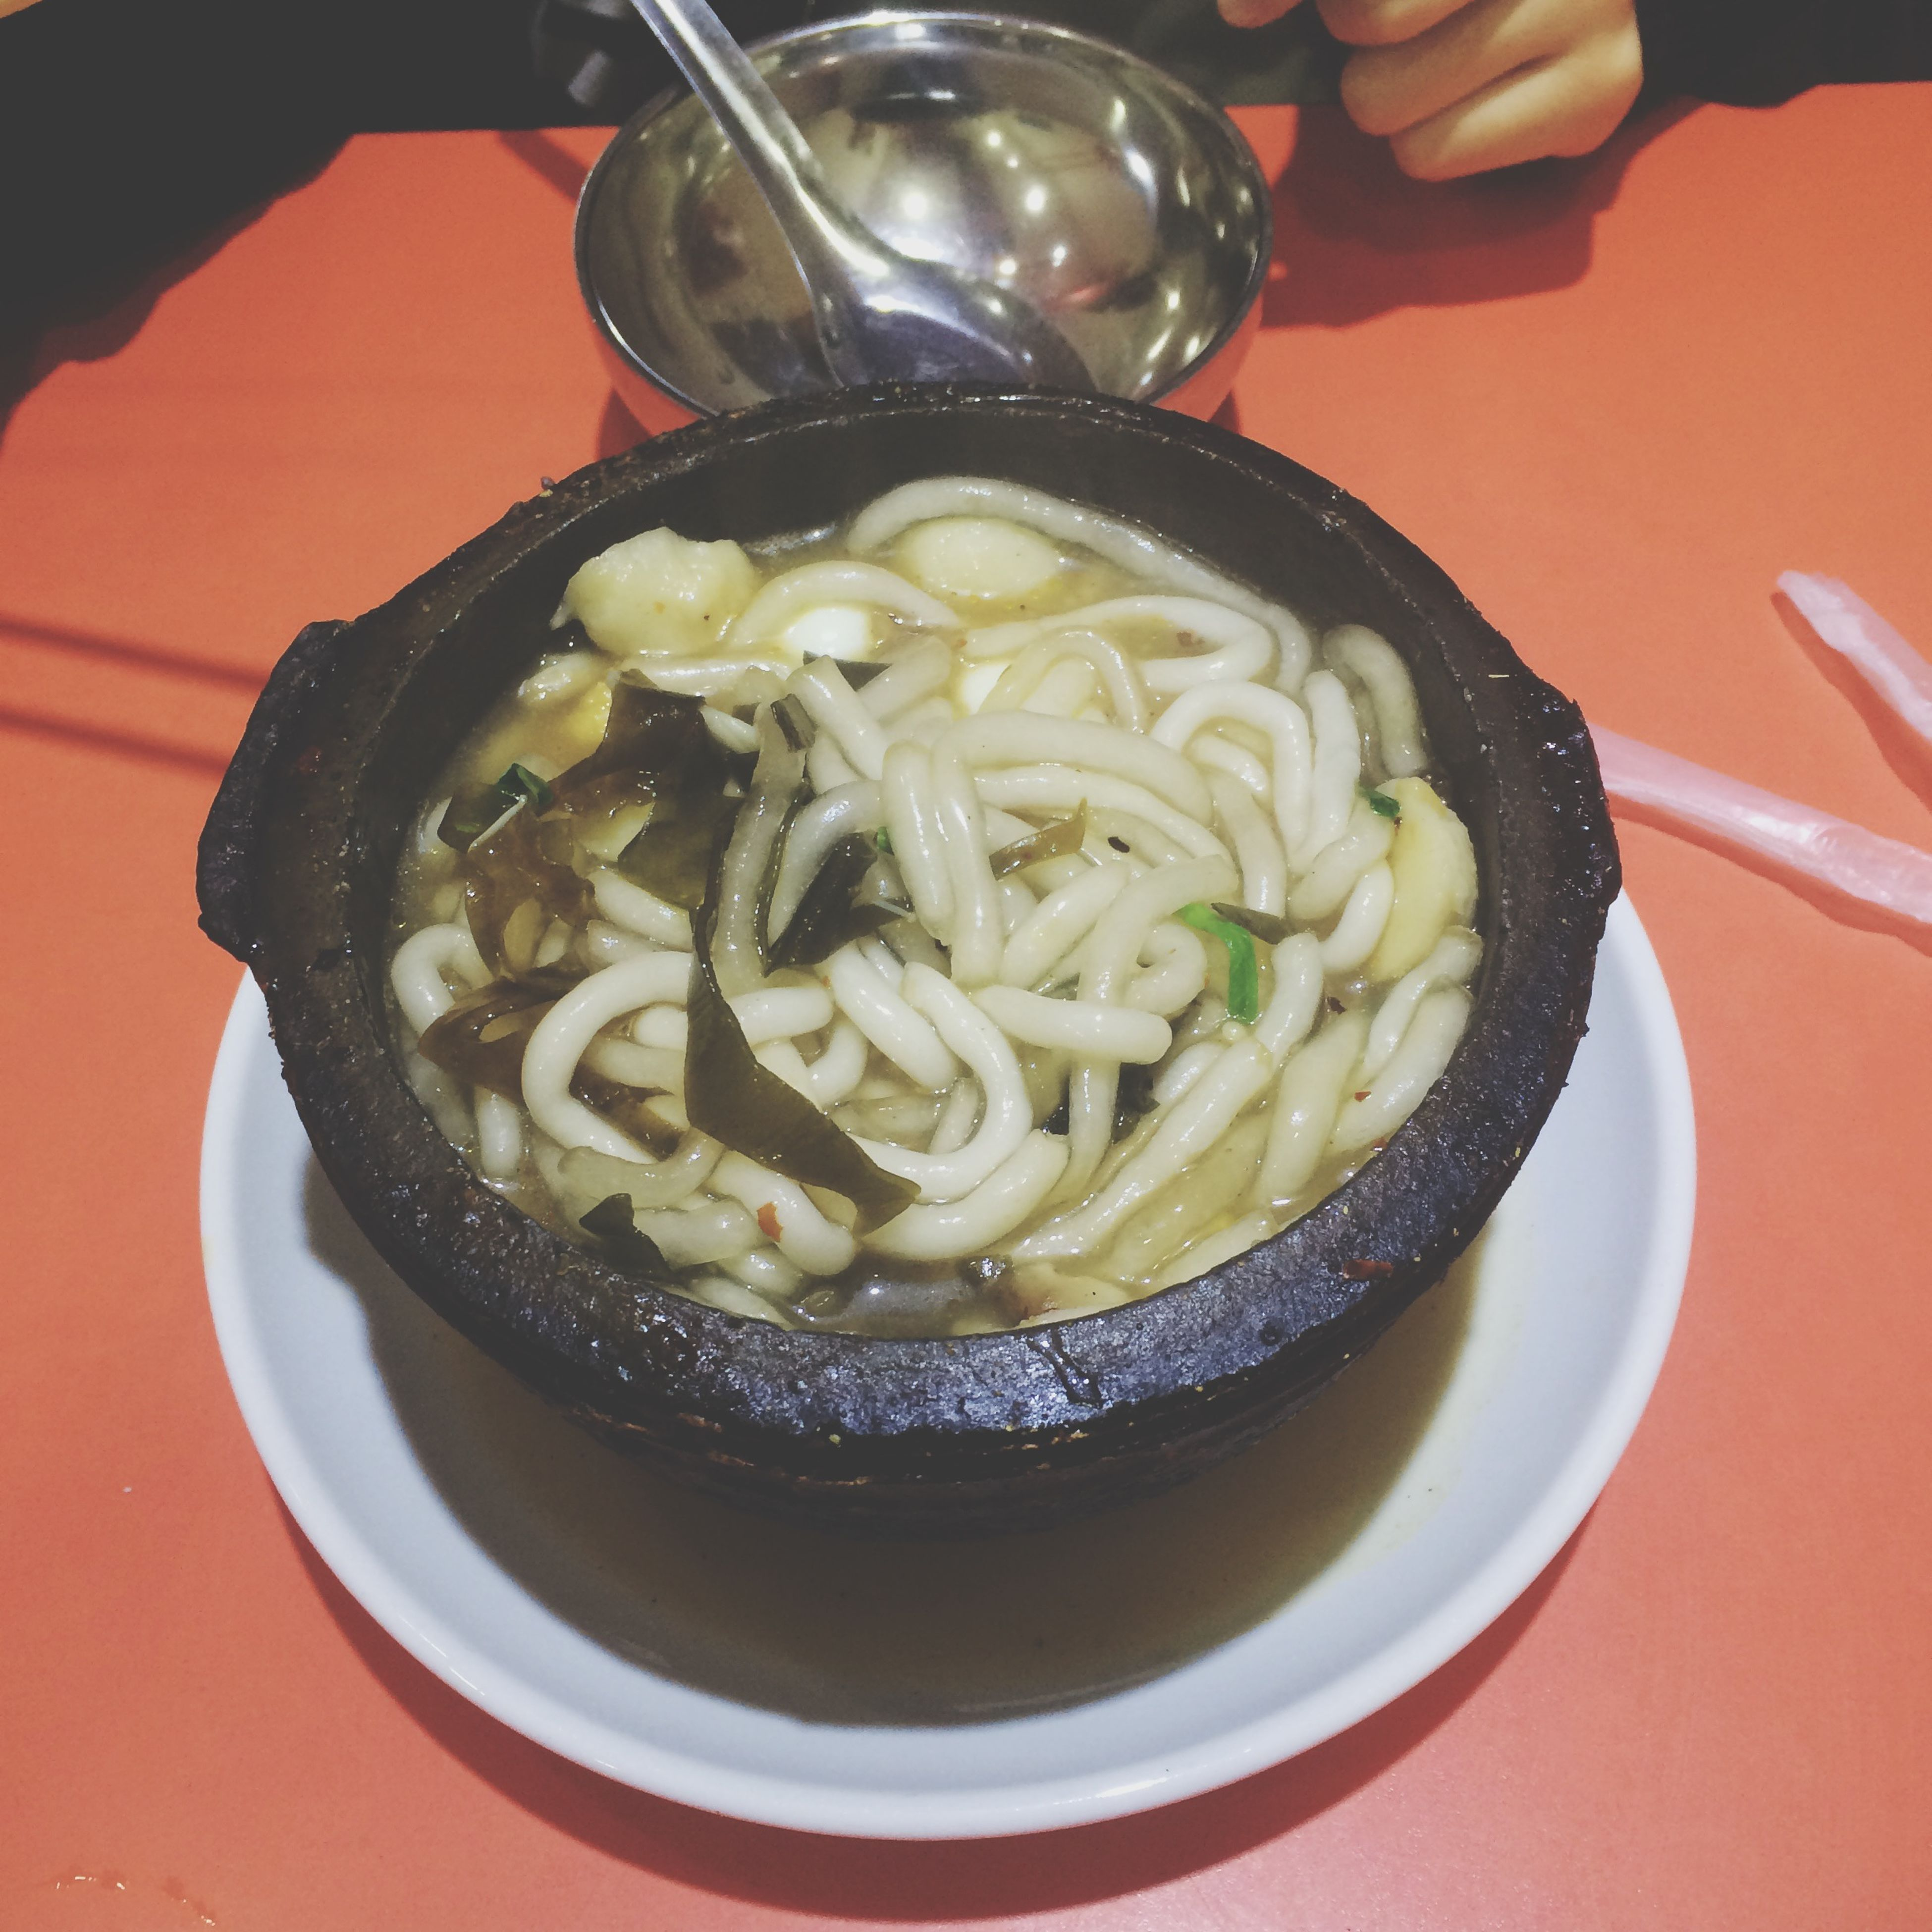 indoors, food and drink, food, freshness, ready-to-eat, plate, table, bowl, still life, healthy eating, serving size, meal, spoon, close-up, indulgence, high angle view, noodles, fork, temptation, served